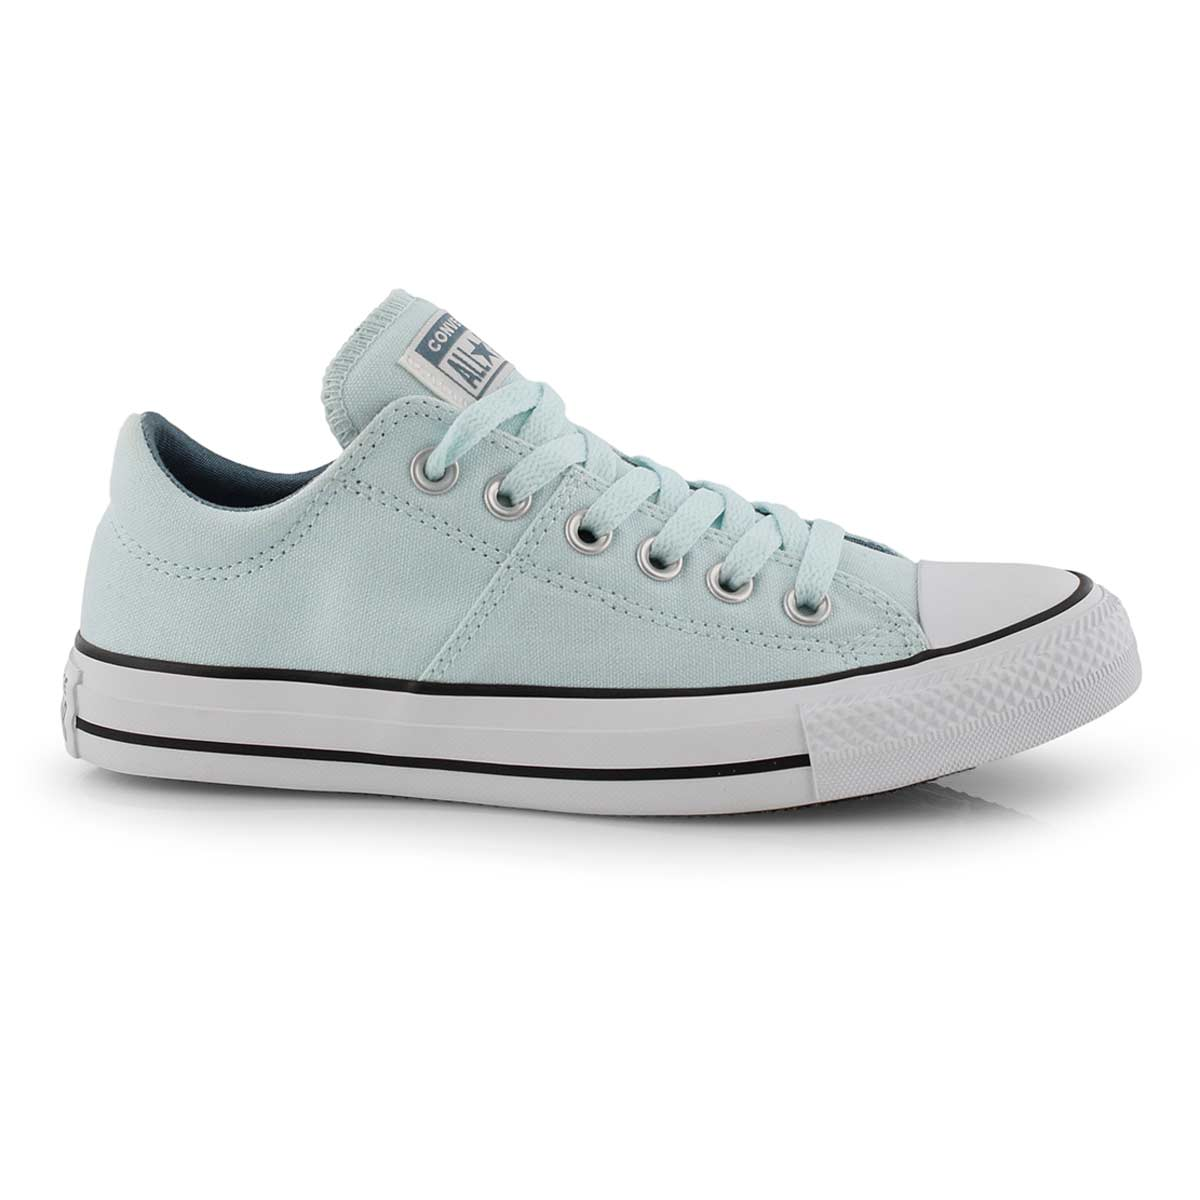 Lds CTAS Madison Ox True Faves teal snkr